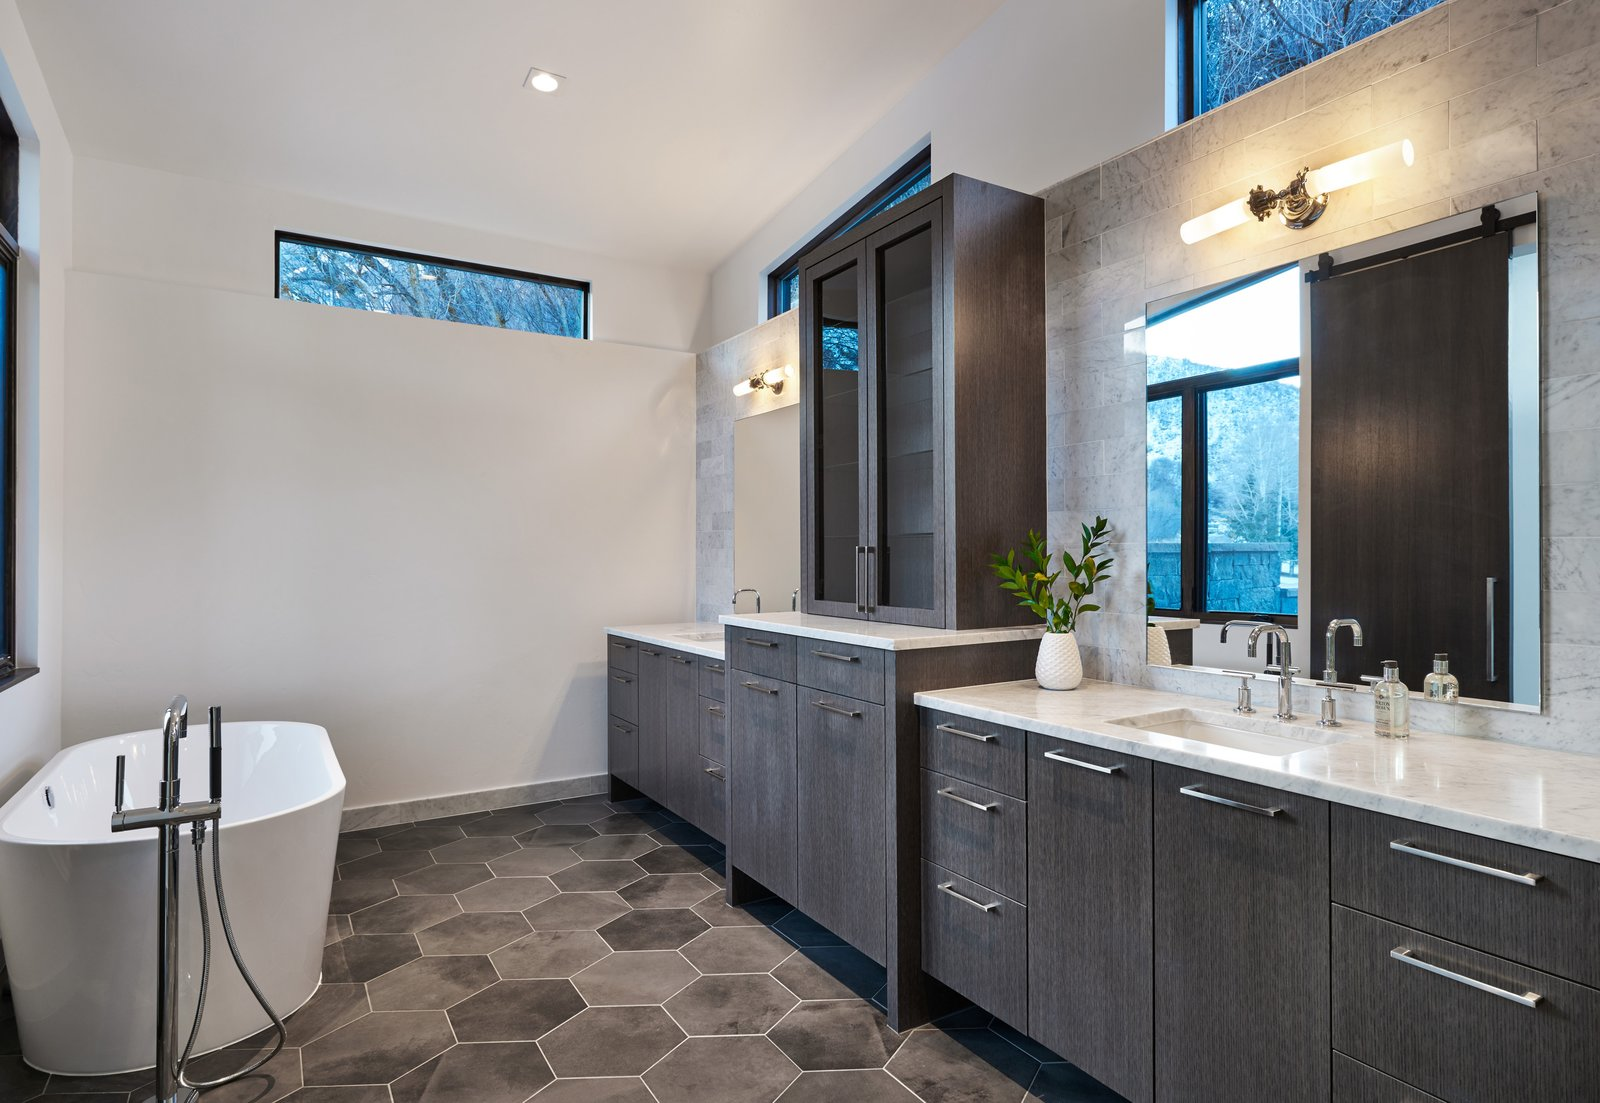 Bath Room, Stone Tile Wall, Undermount Sink, Ceiling Lighting, Marble Counter, Freestanding Tub, Porcelain Tile Floor, and Accent Lighting  Terrace Drive by KA DesignWorks